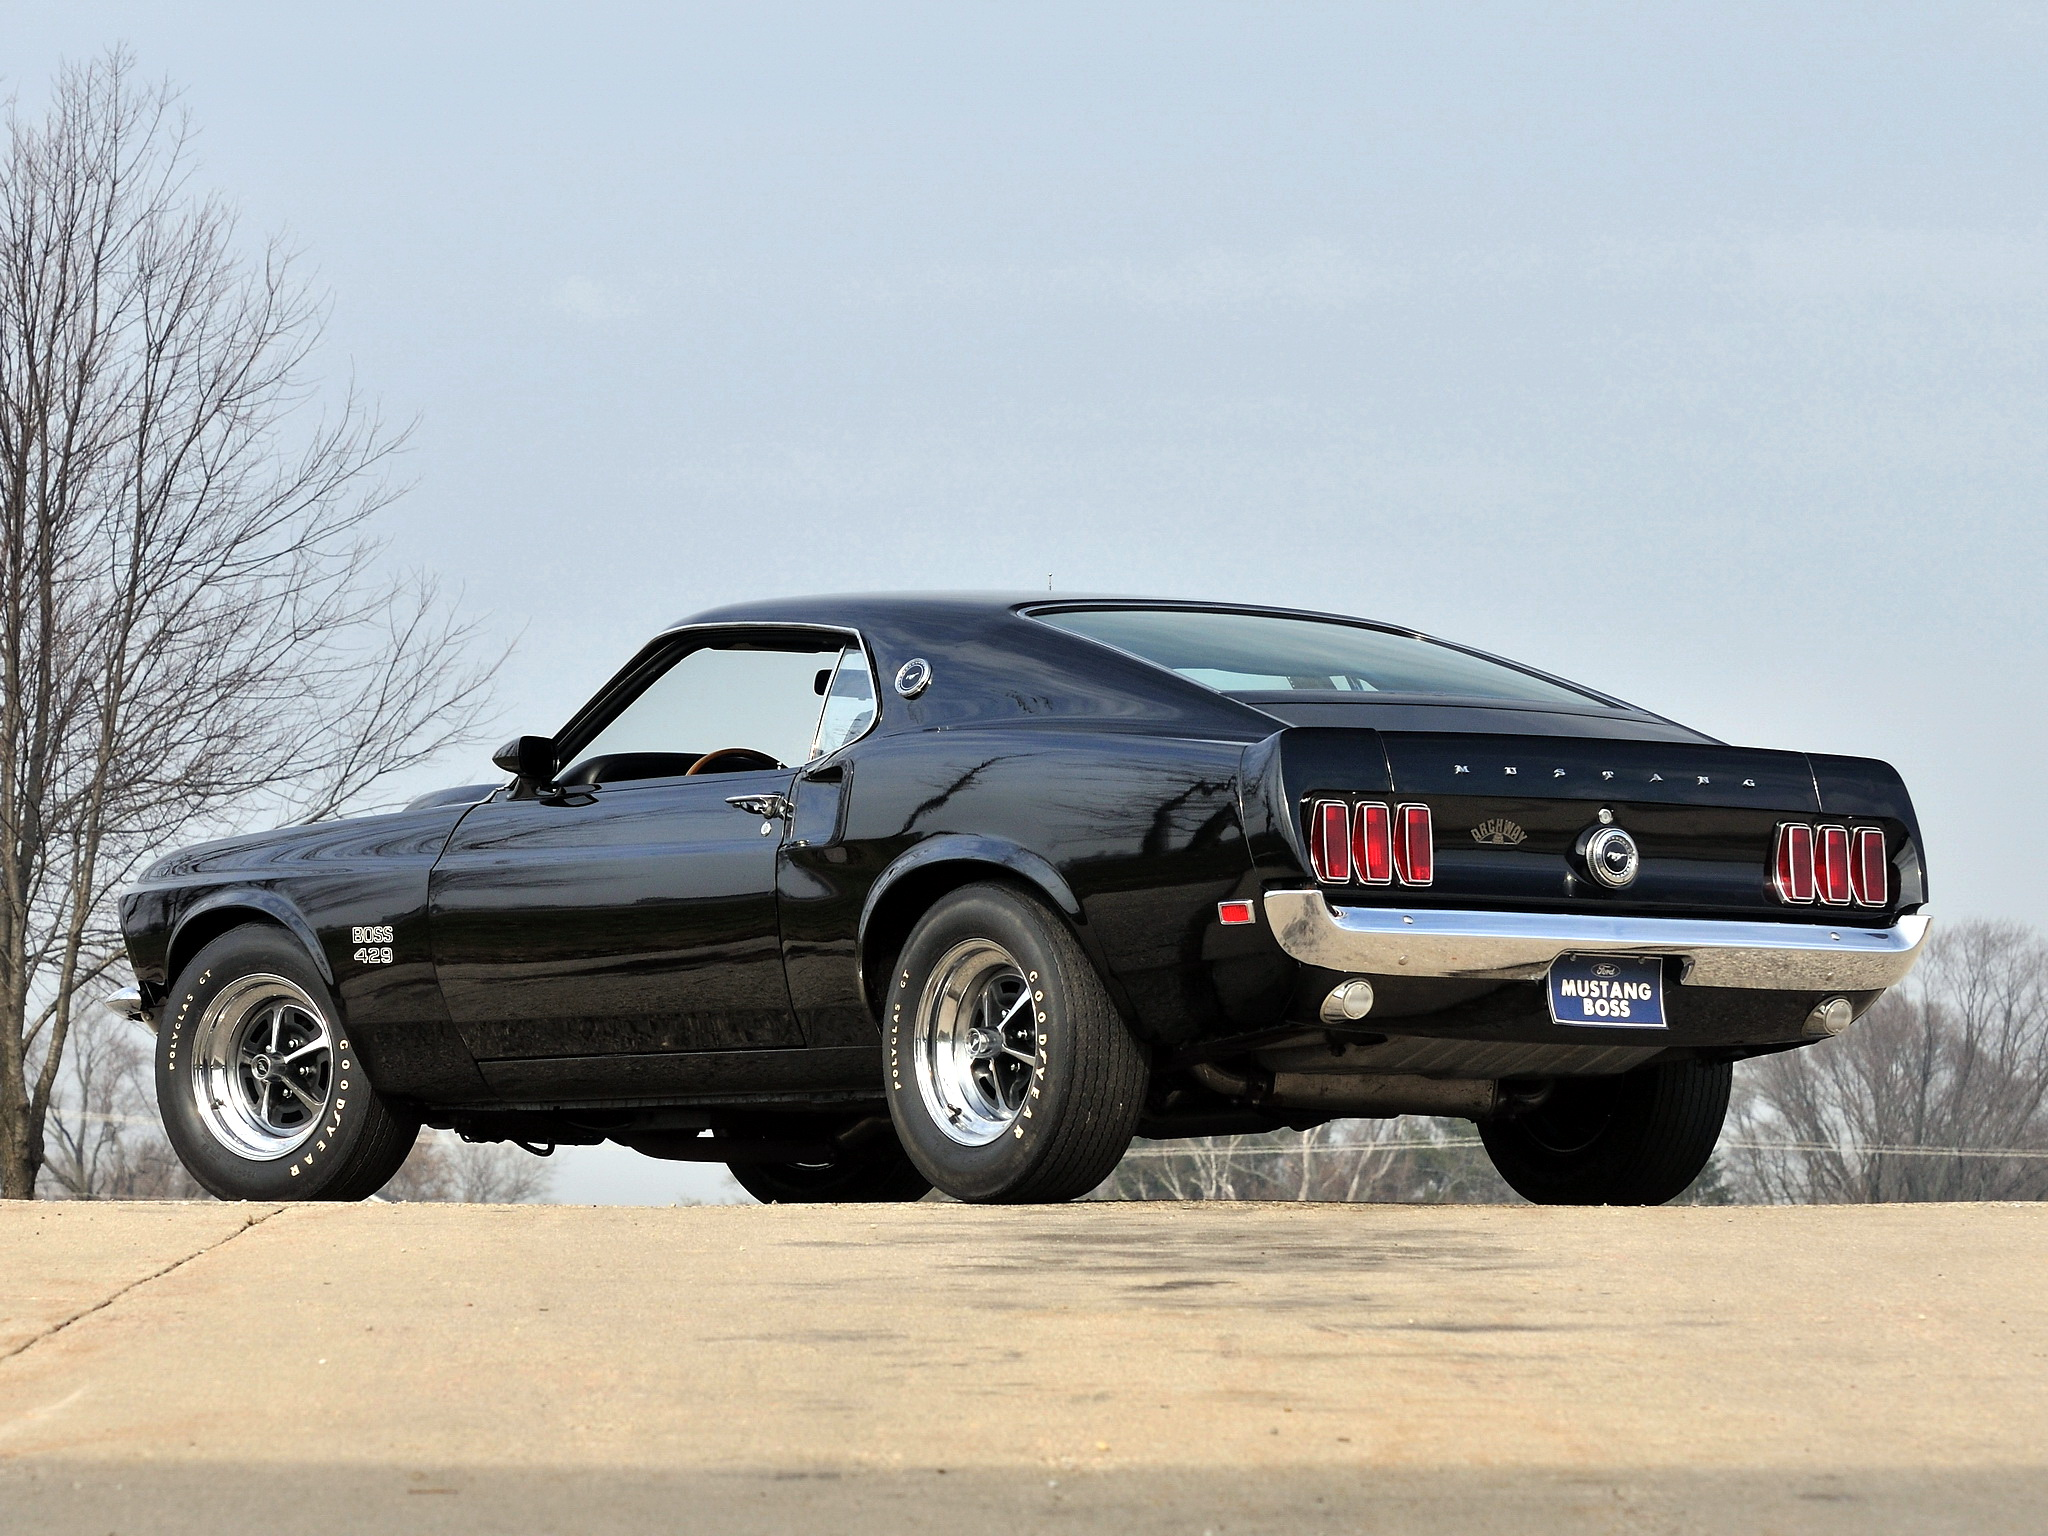 1969 Mustang Boss 429 ford muscle classic wallpaper 2048x1536 2048x1536